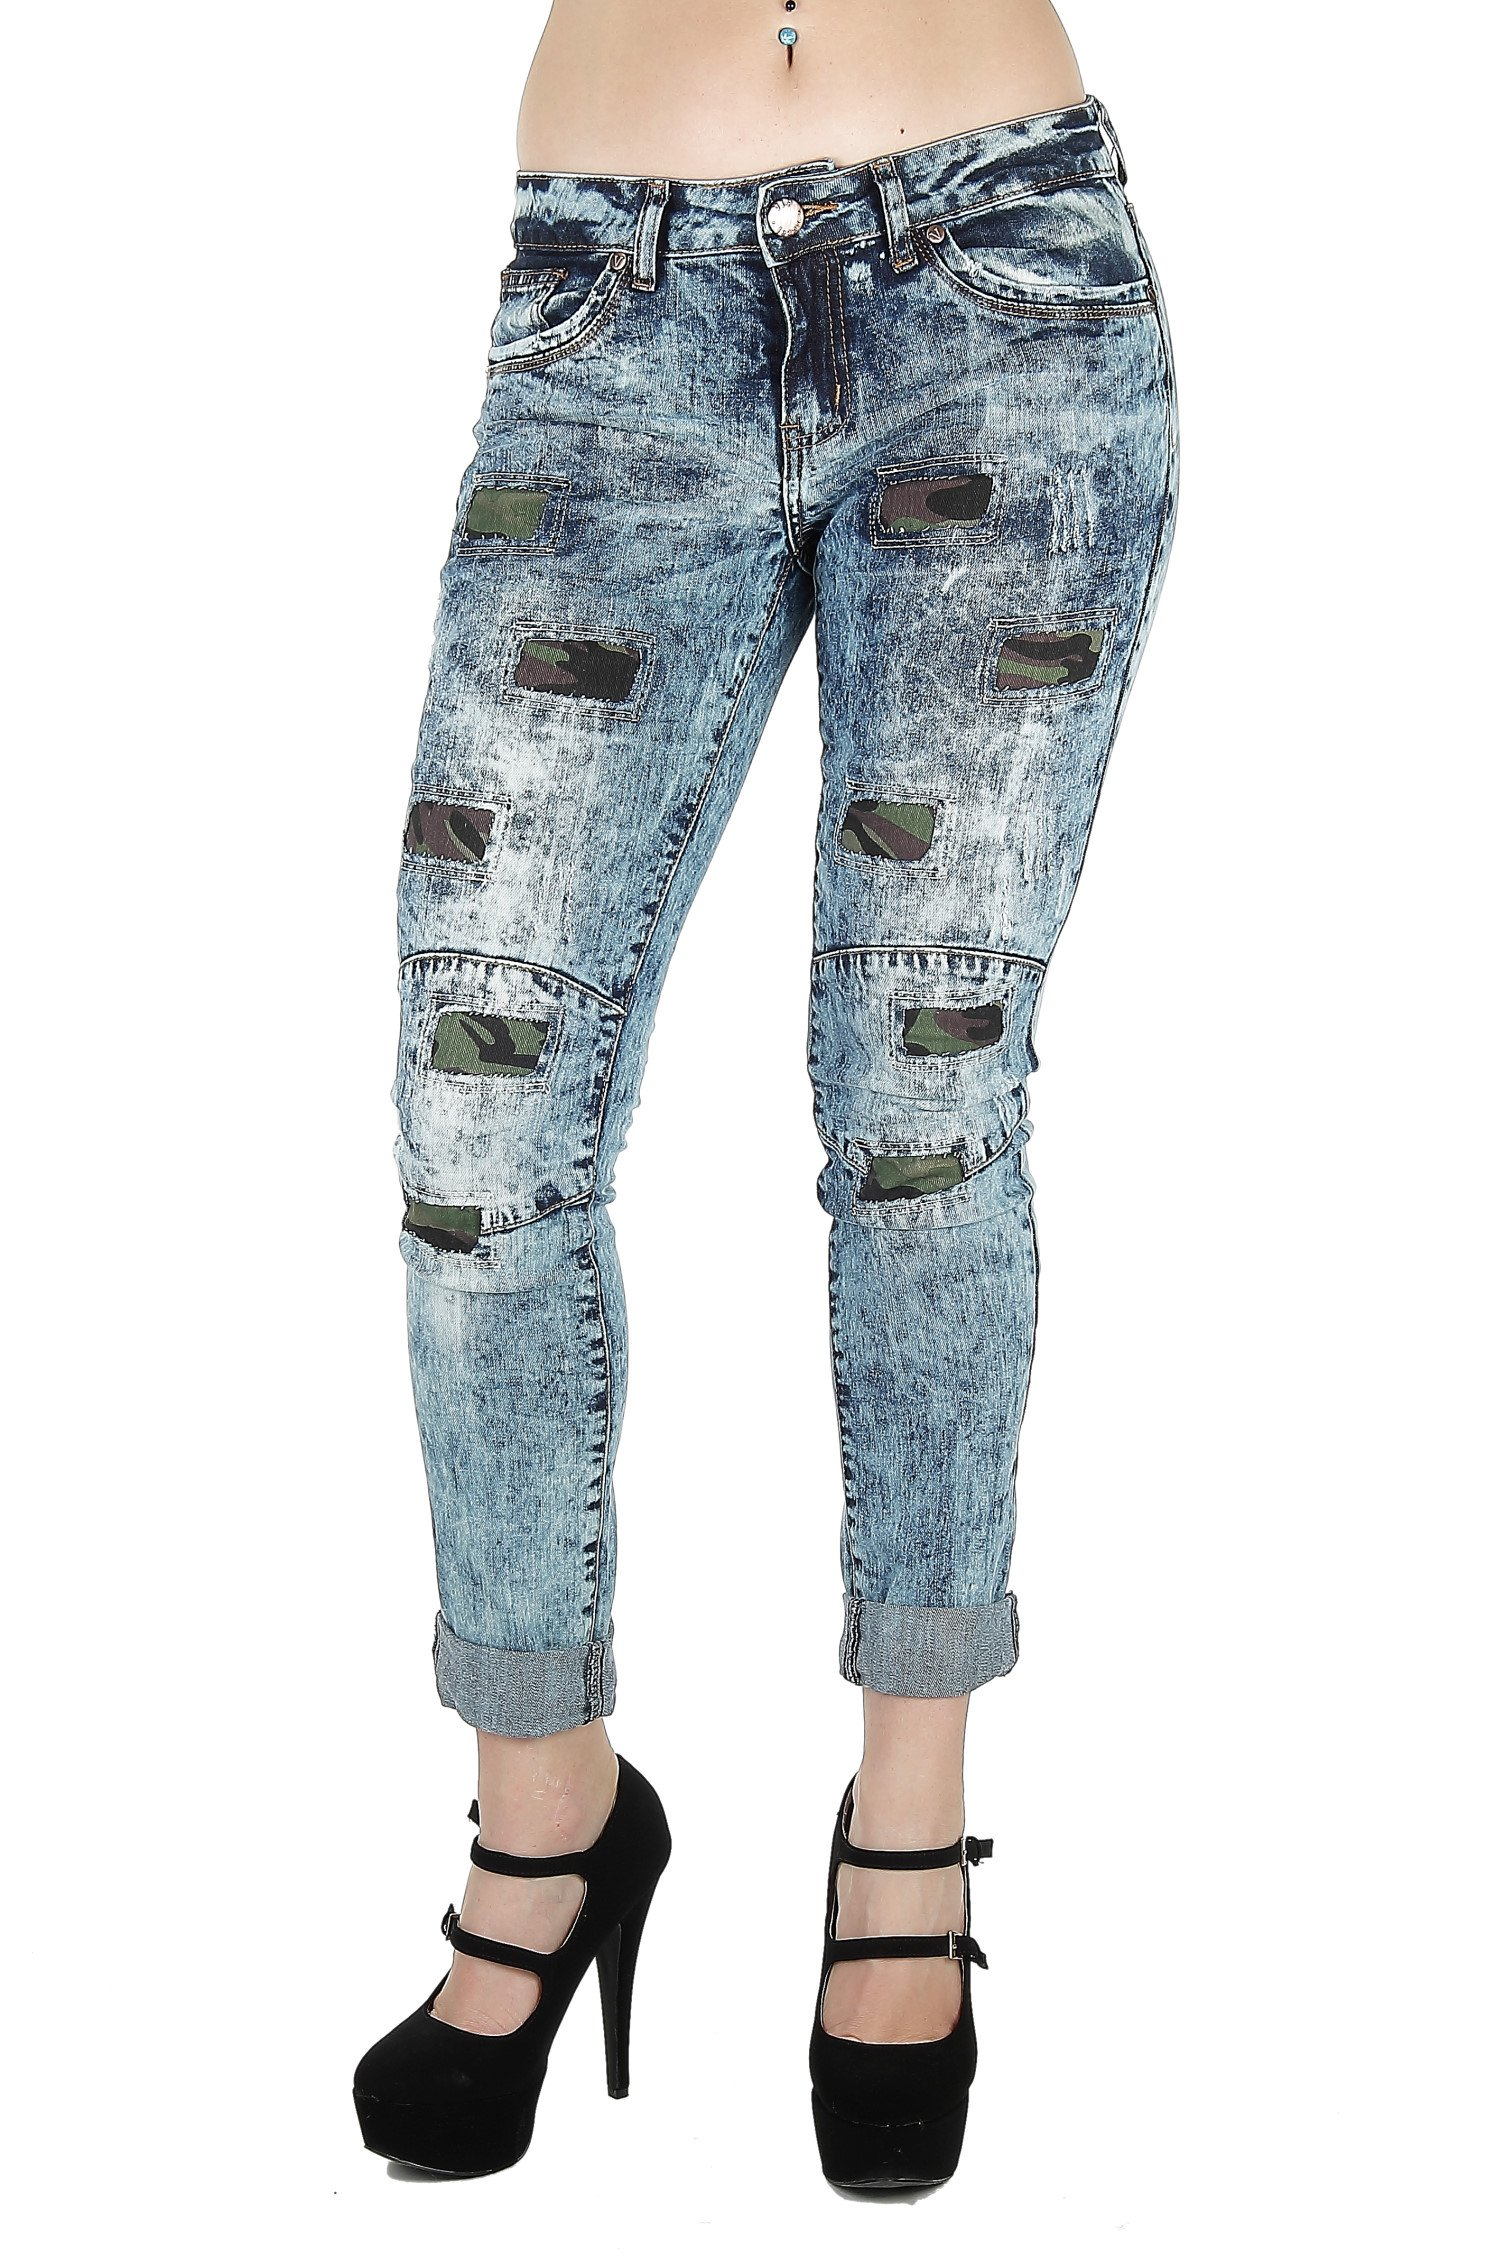 Style 7836DBA - Destroyed Rip and Repair Premium Roll-up Boyfriend Fit Capri in Washed Blue Size 9